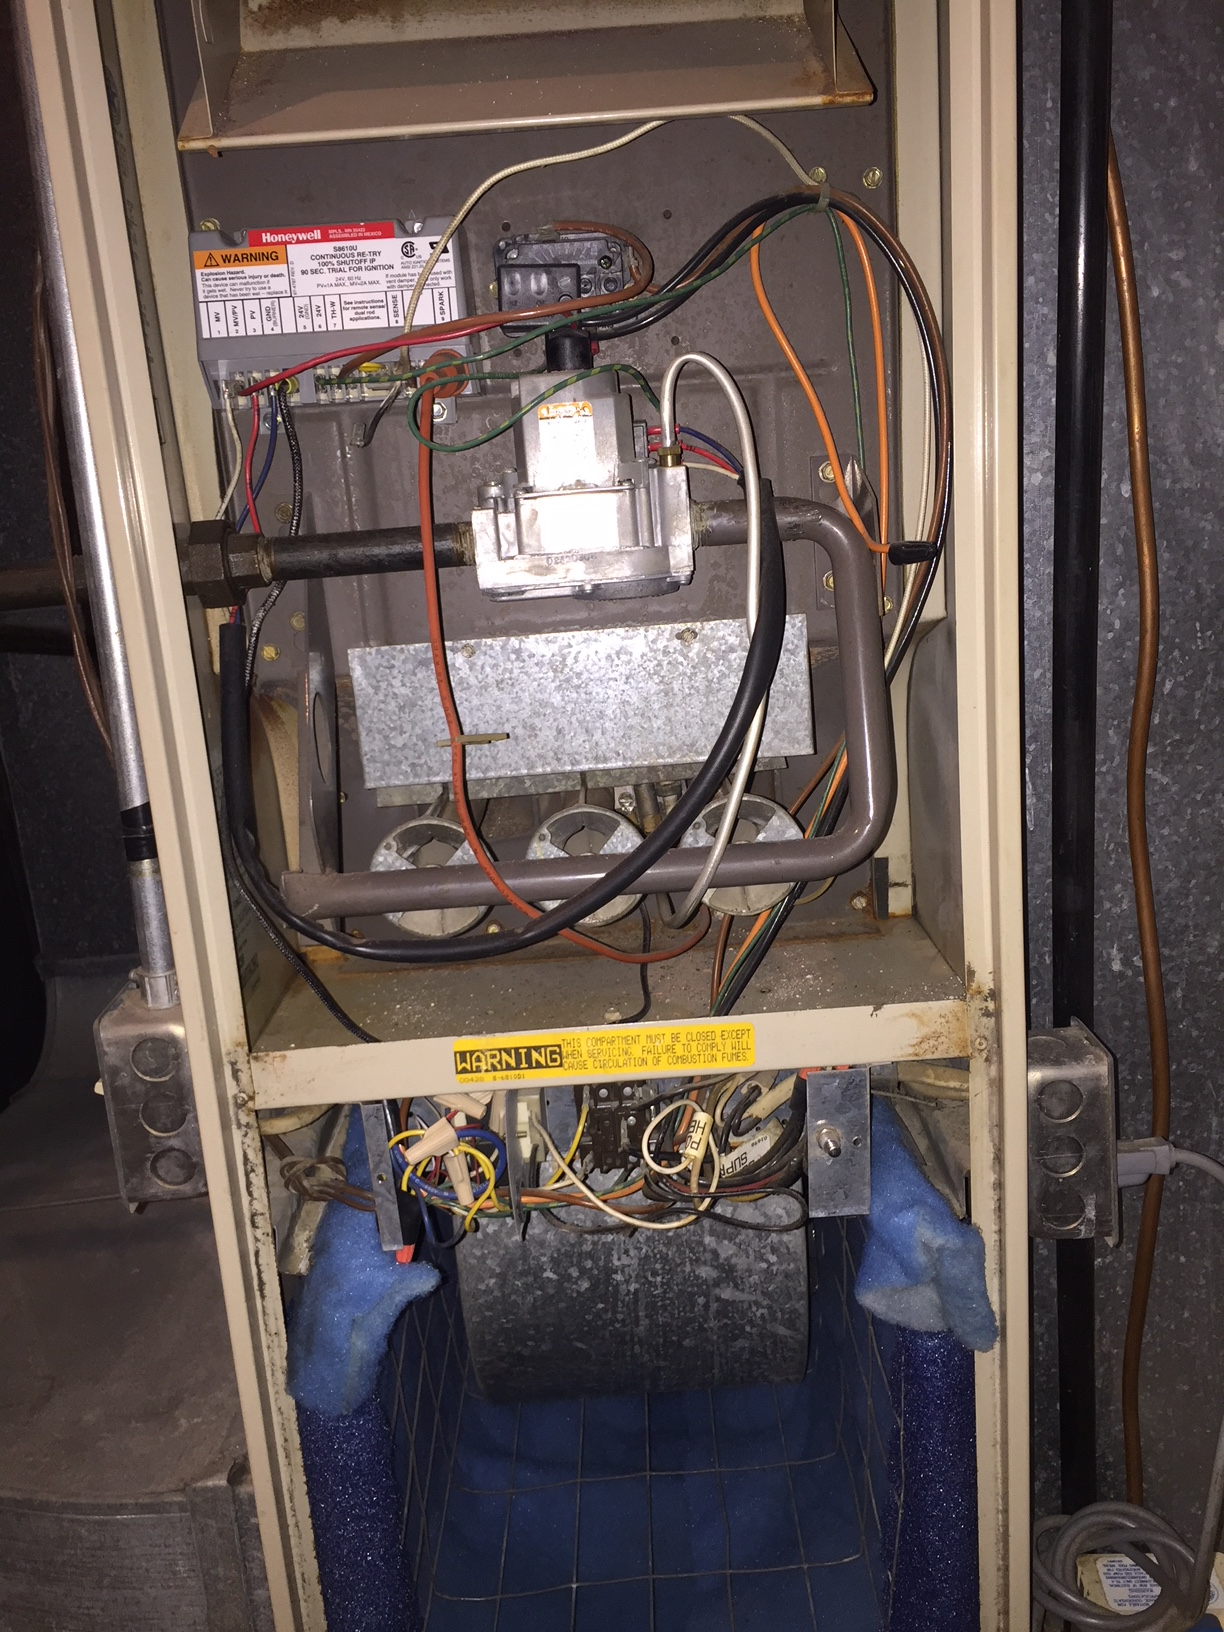 hight resolution of  there is zero activity at the furnace no clicking igniter gas sounds etc i checked and re seated wiring connectors inside the unit with no change